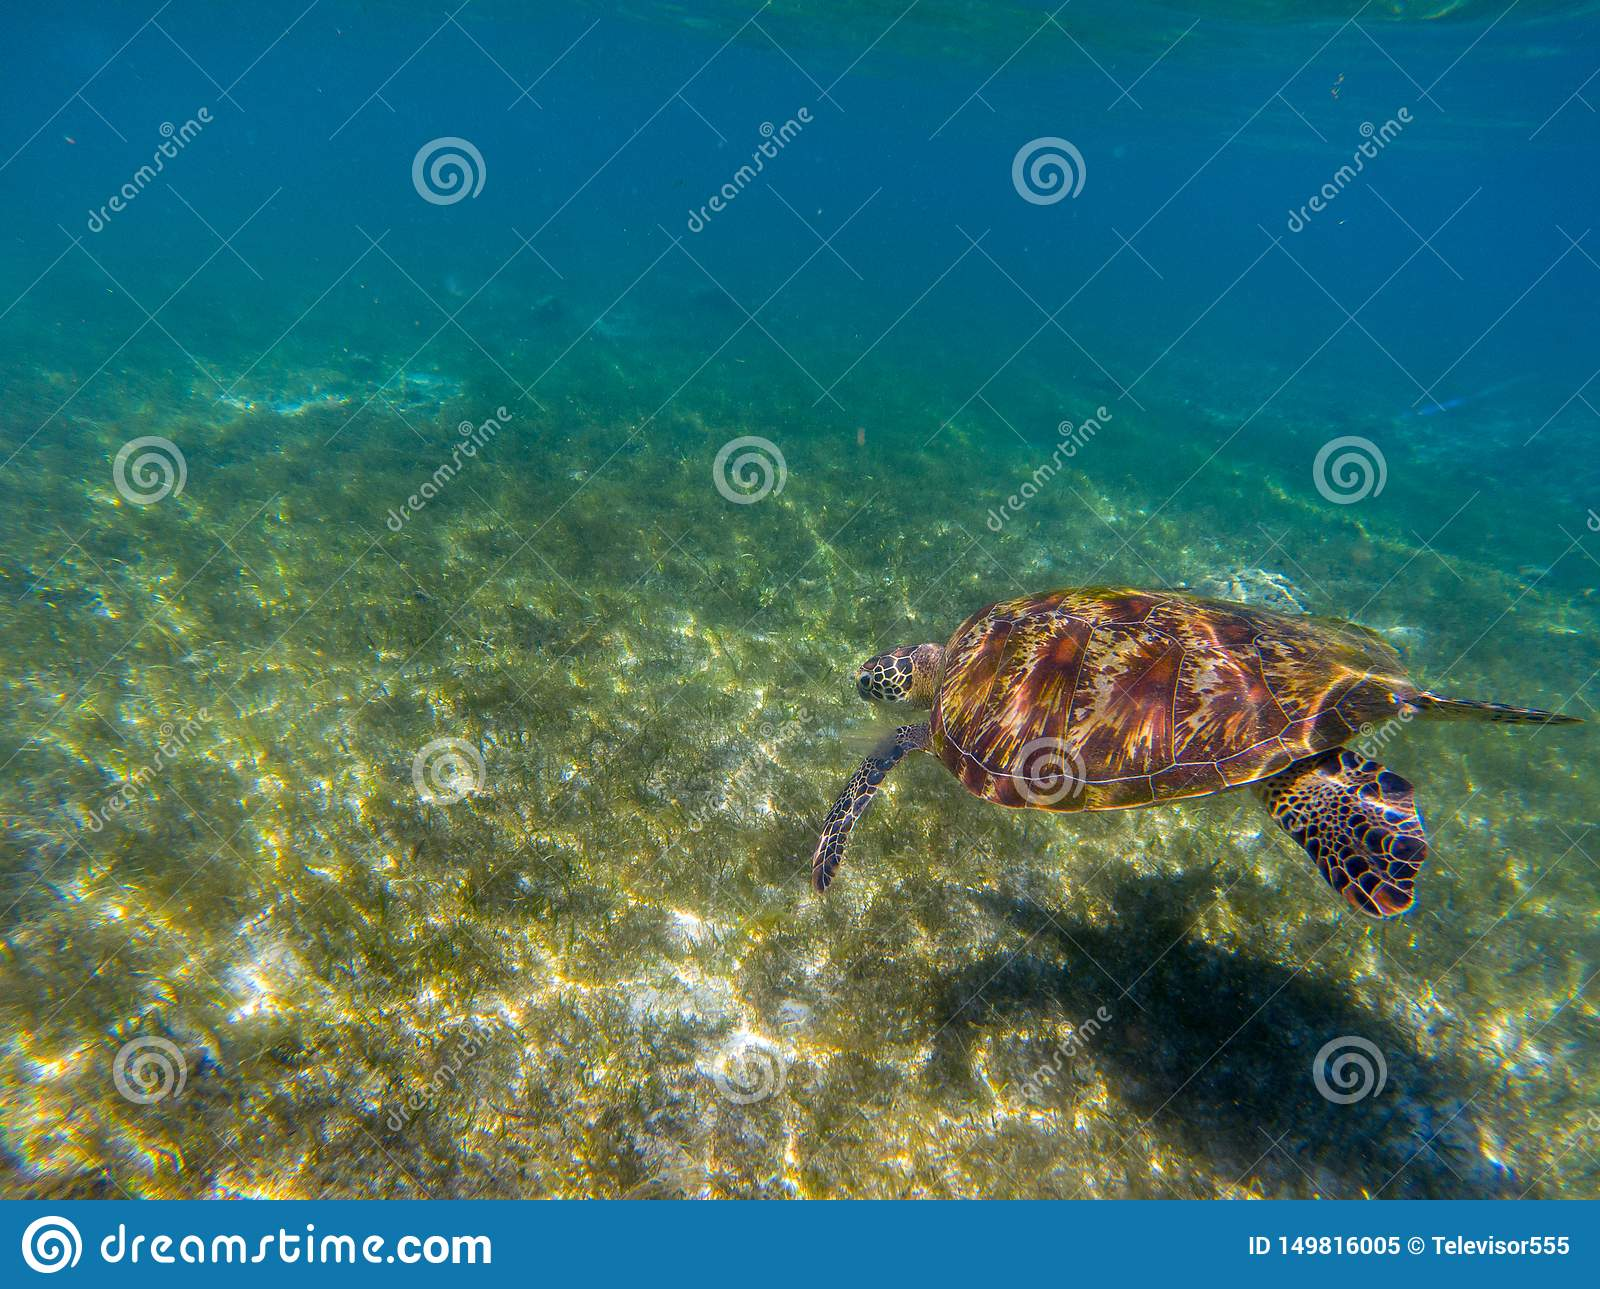 Sea Tortoise Dives In Shallow Water. Green Turtle